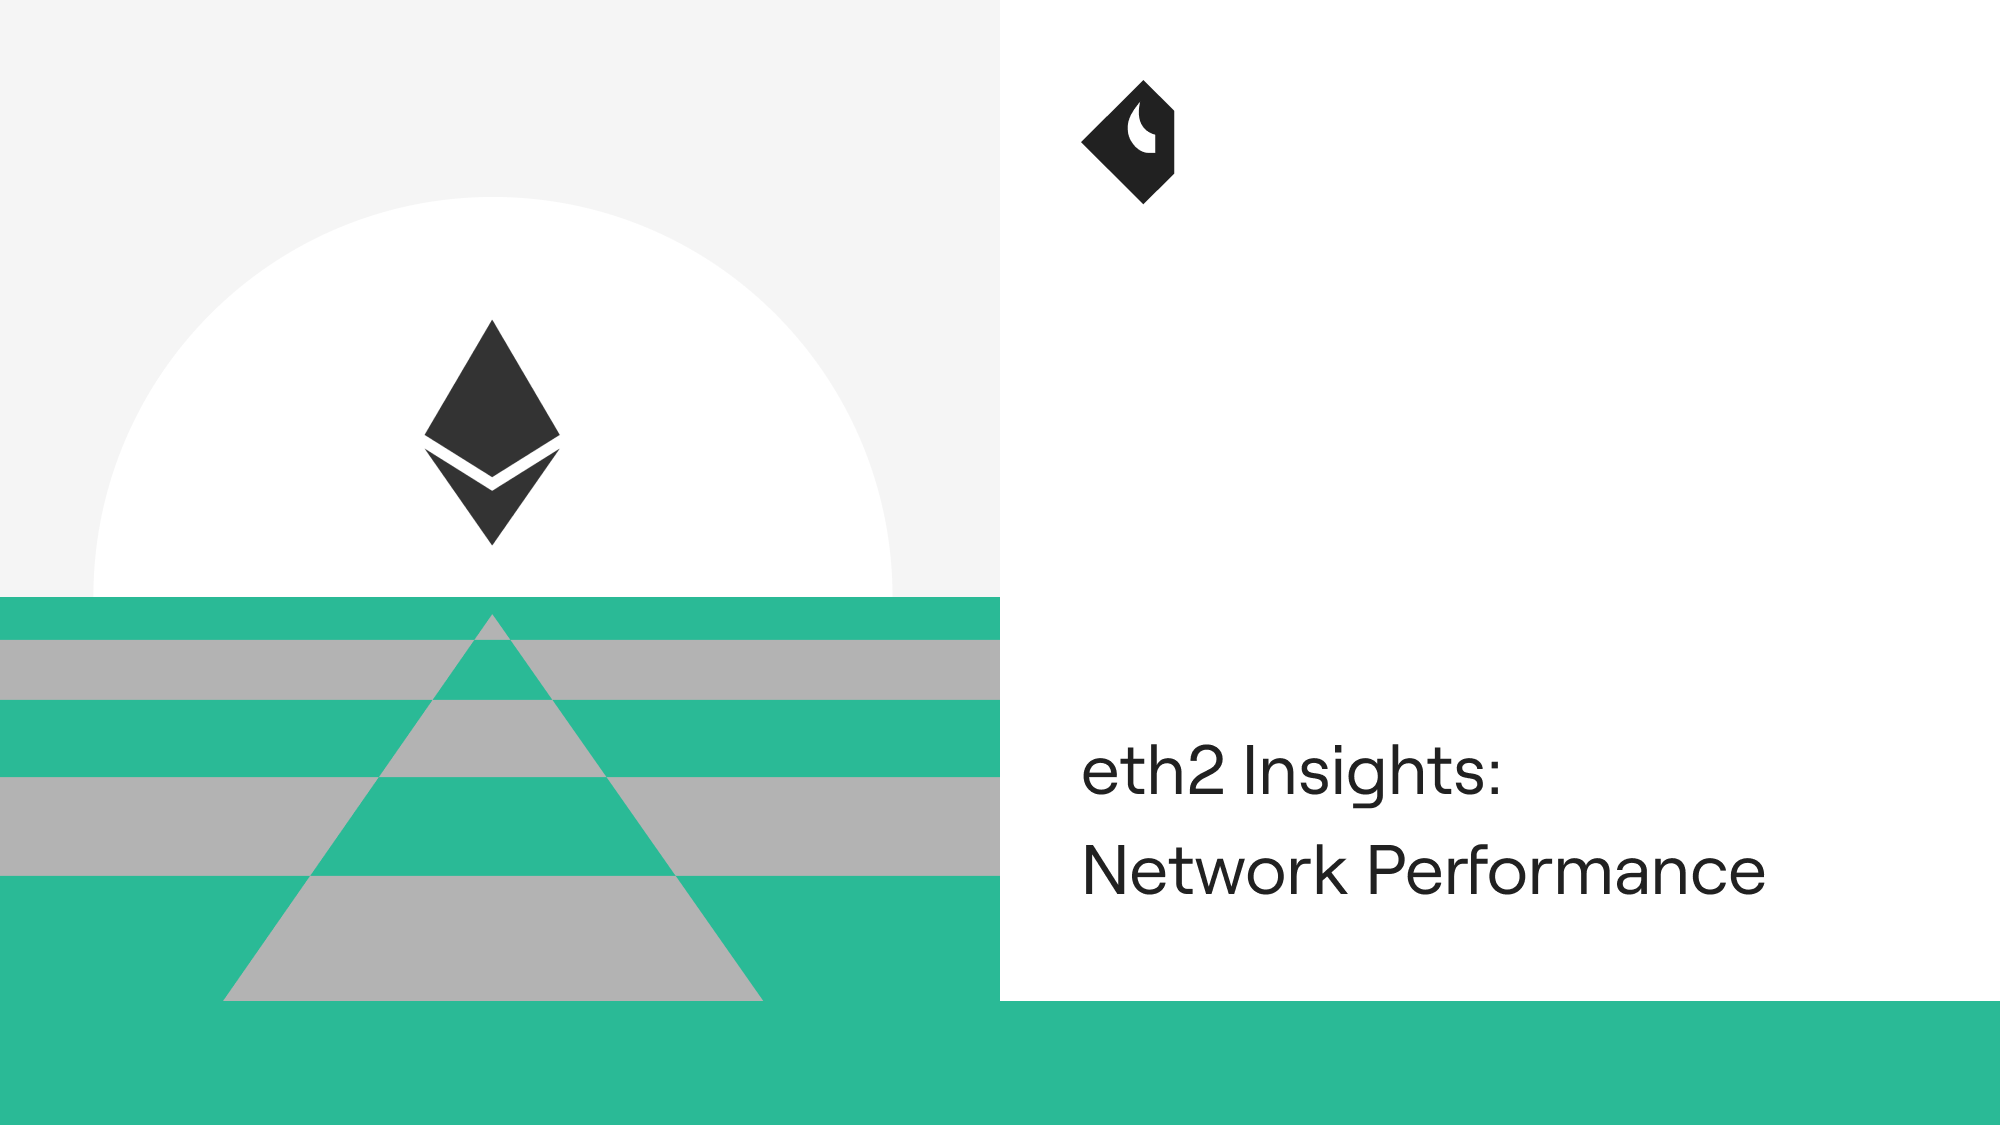 eth2 Insights: Network Performance